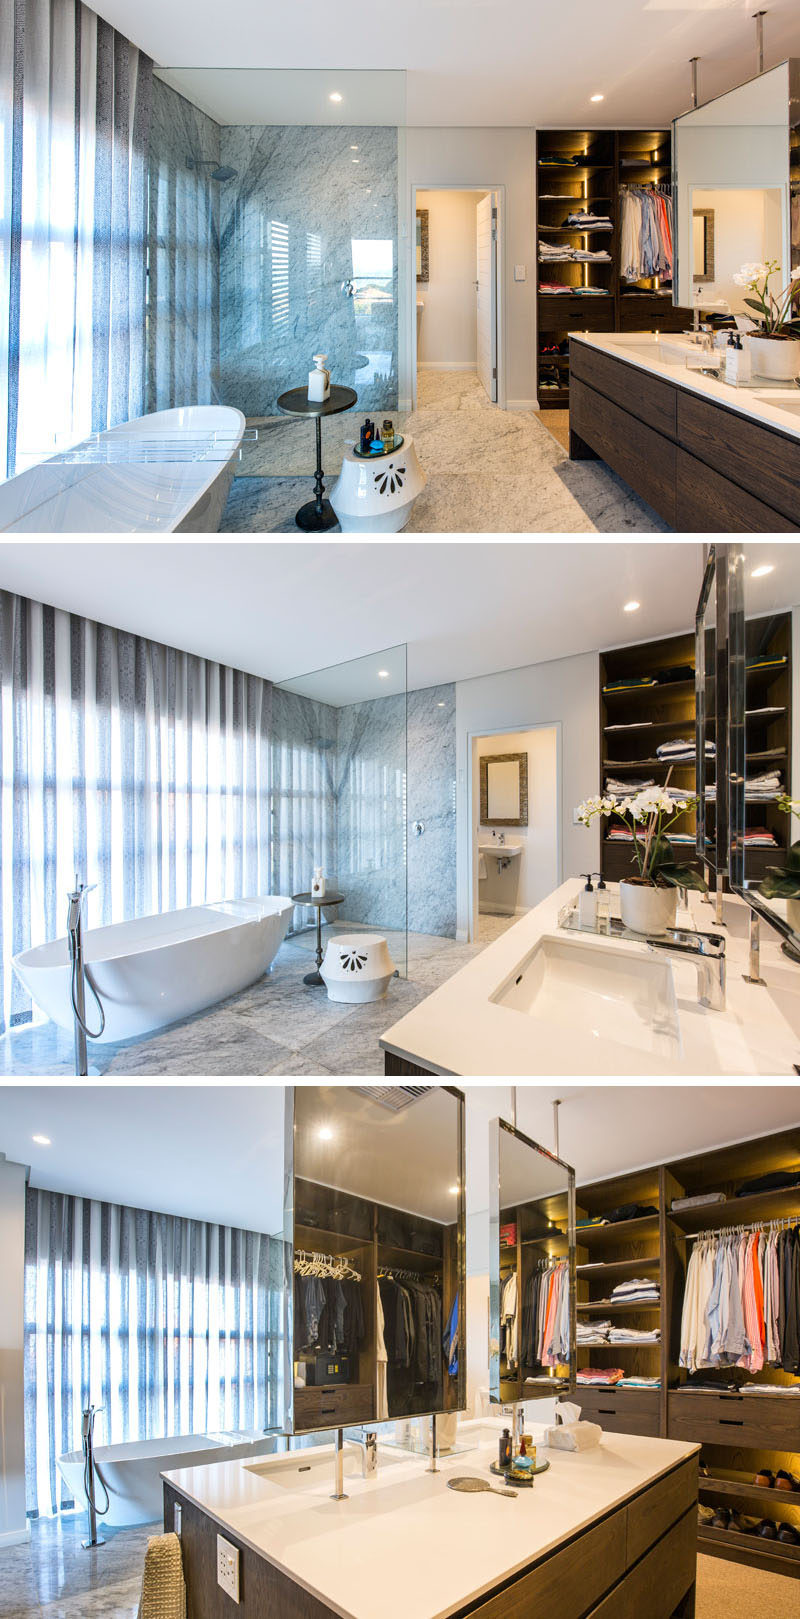 In this modern master bathroom, the space is open plan with the glass enclosed shower, bath, double-sided vanity and closet all sharing the same room. #Bathroom #MasterBathroom #EnsuiteBathroom #Closet